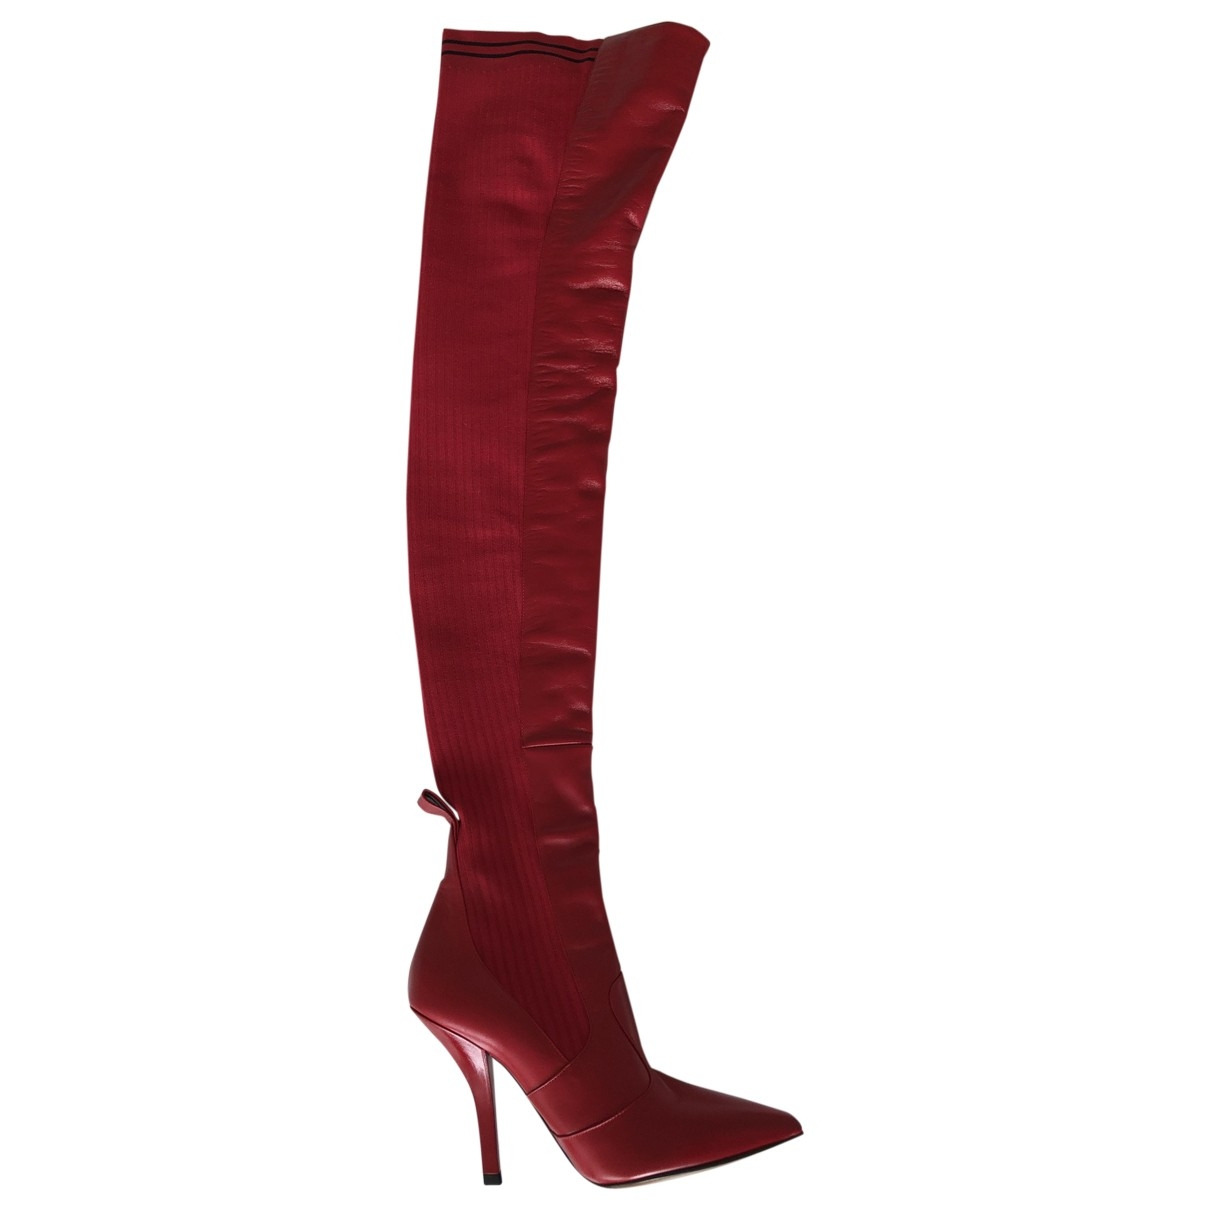 Fendi \N Red Leather Boots for Women 37.5 EU